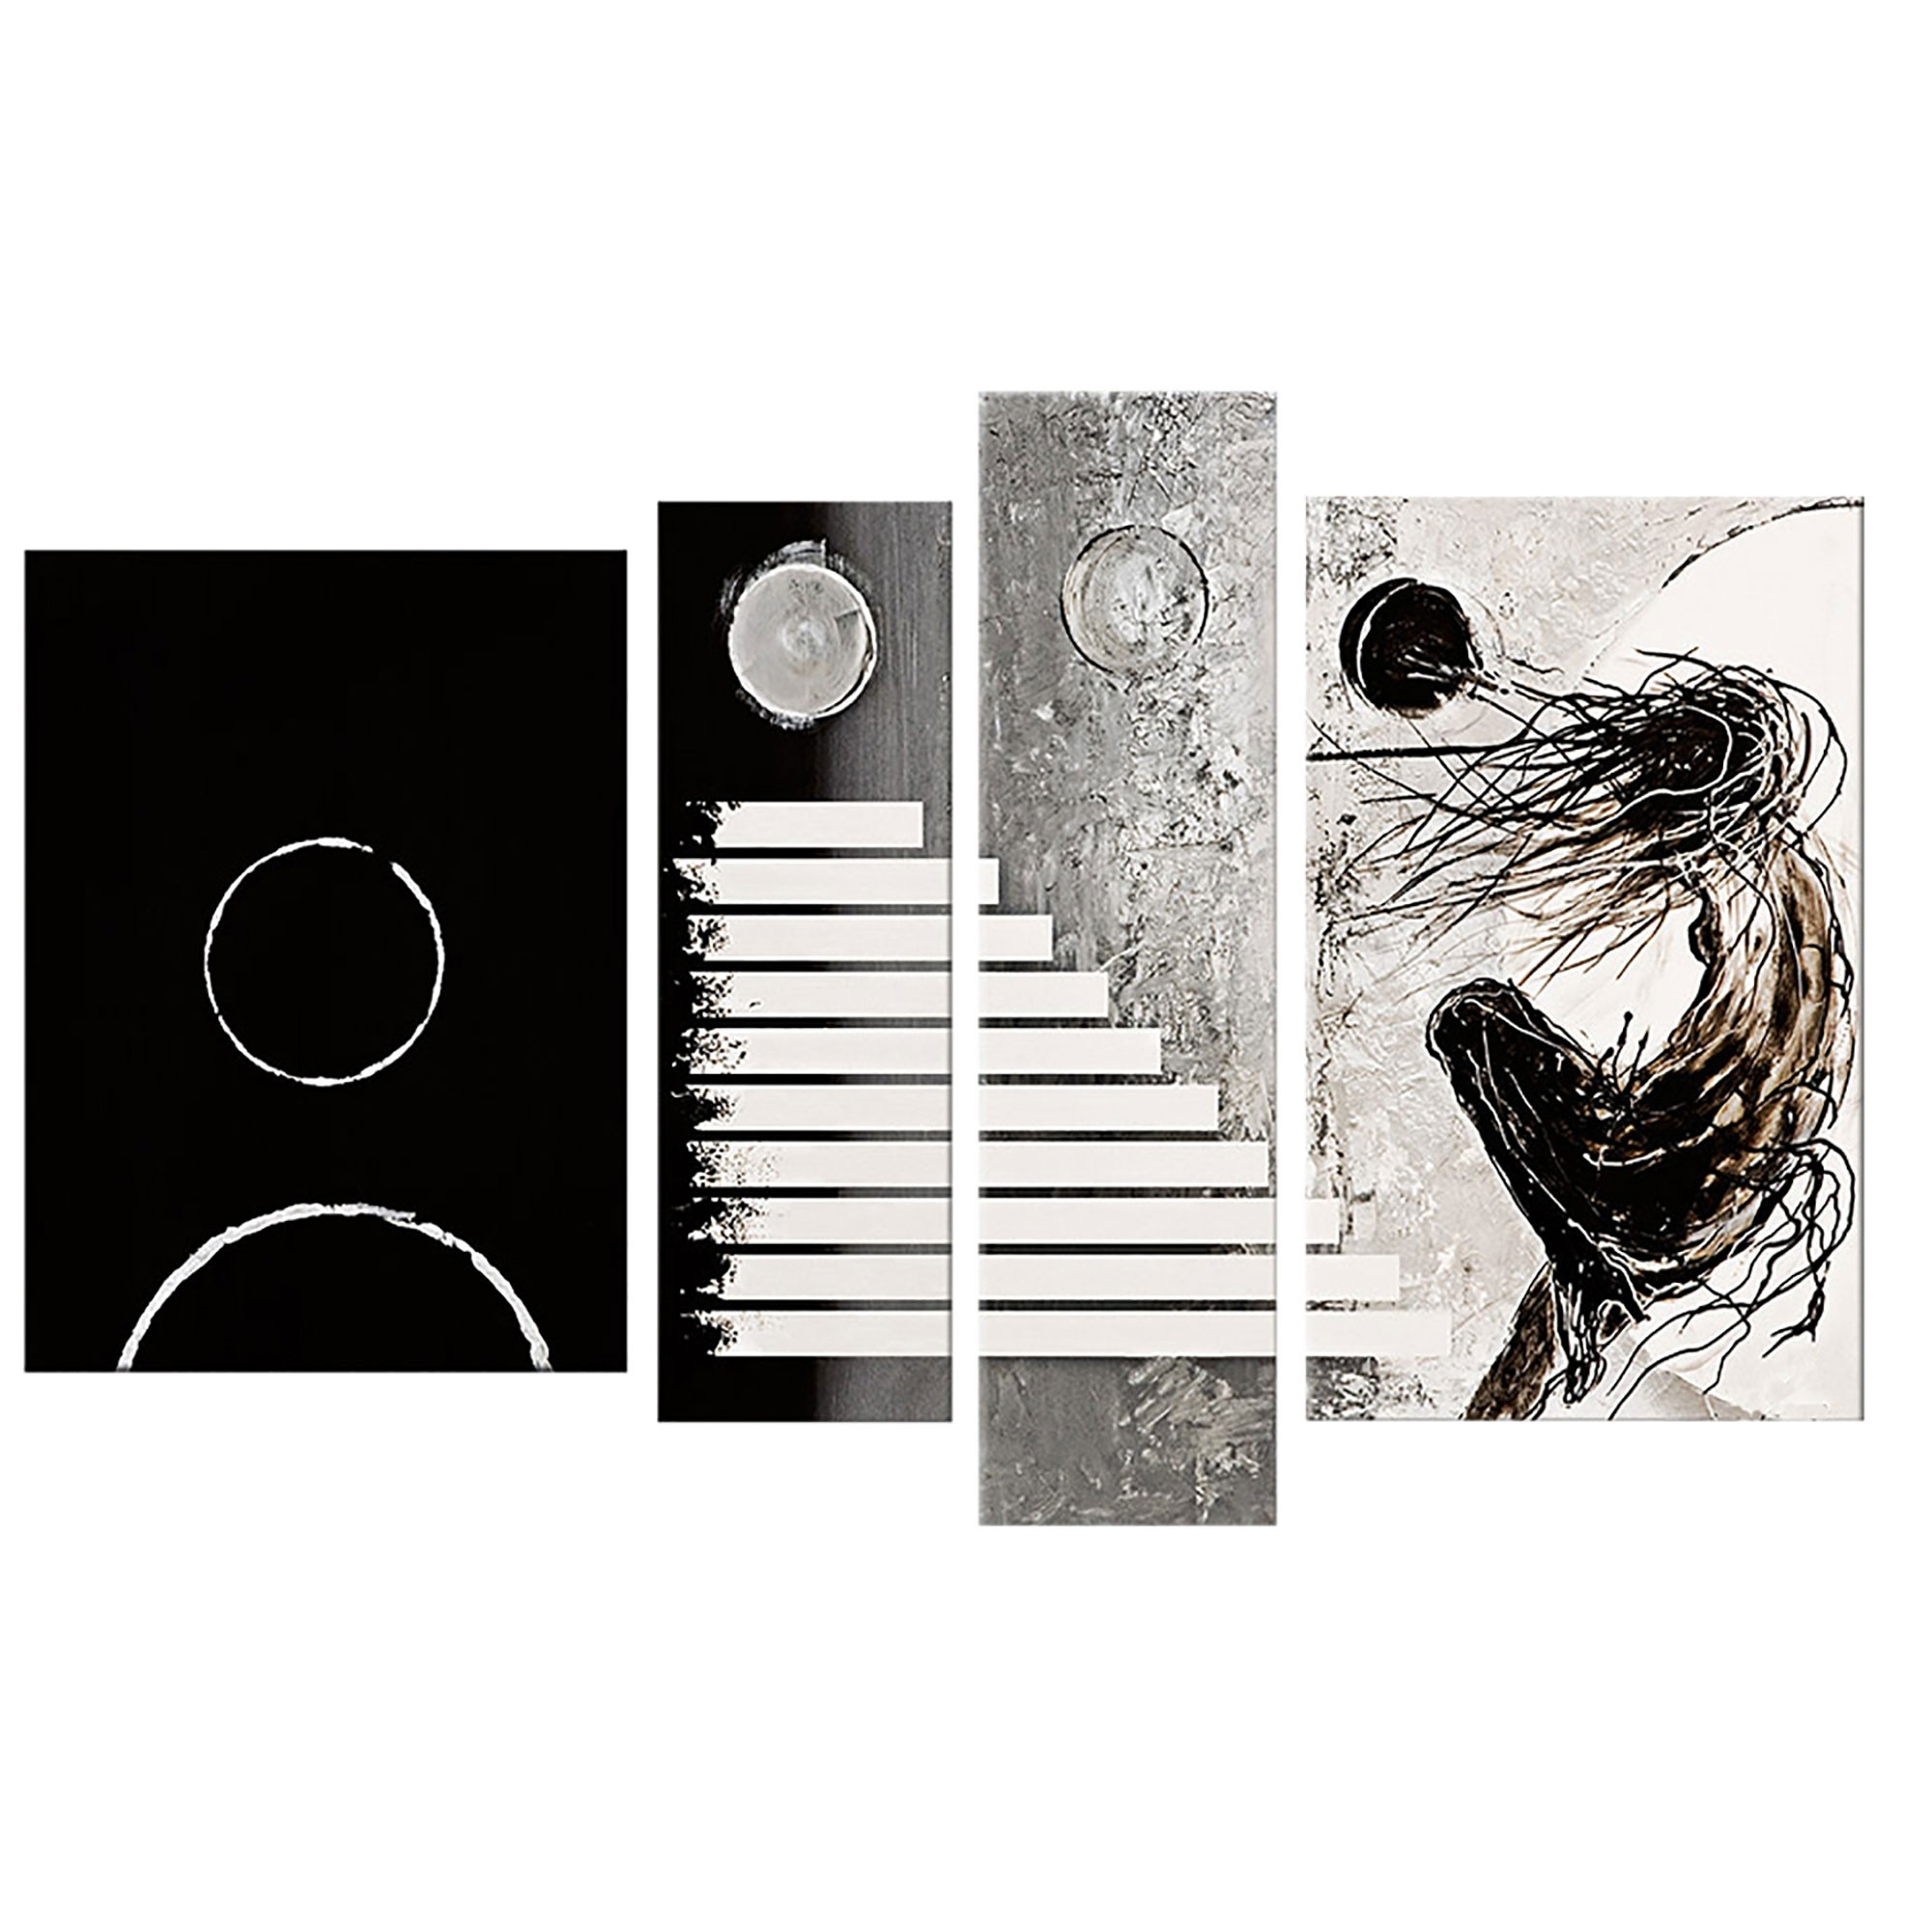 Description – Why Accent Canvas? This Exquisite Black & White With Regard To Most Recent Black And White Abstract Wall Art (View 2 of 20)